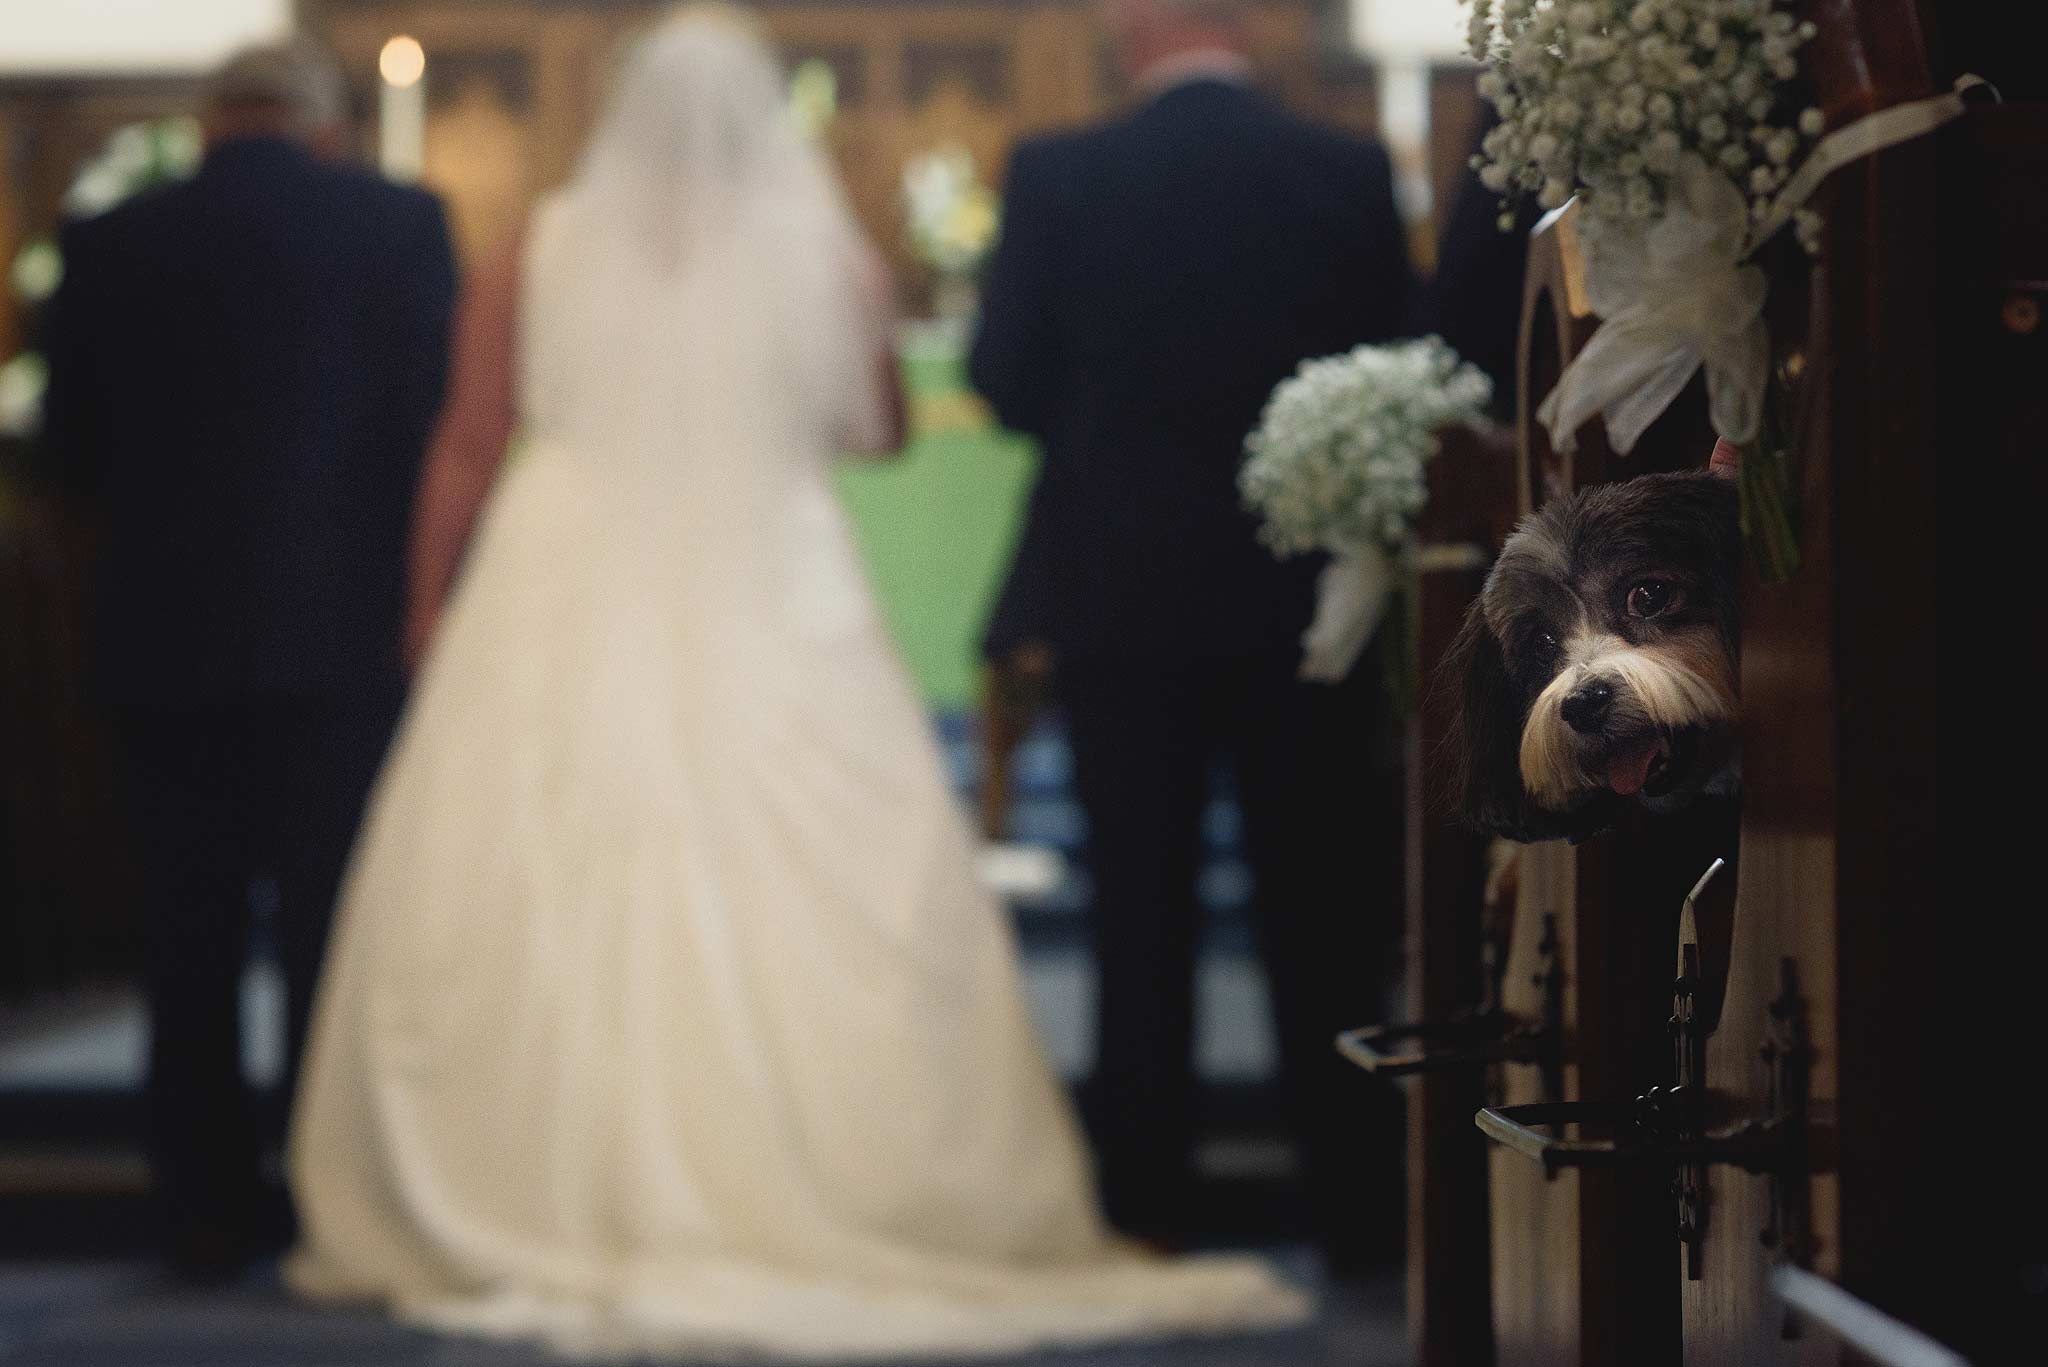 Dog watching as the bride walks down the aisle inside church